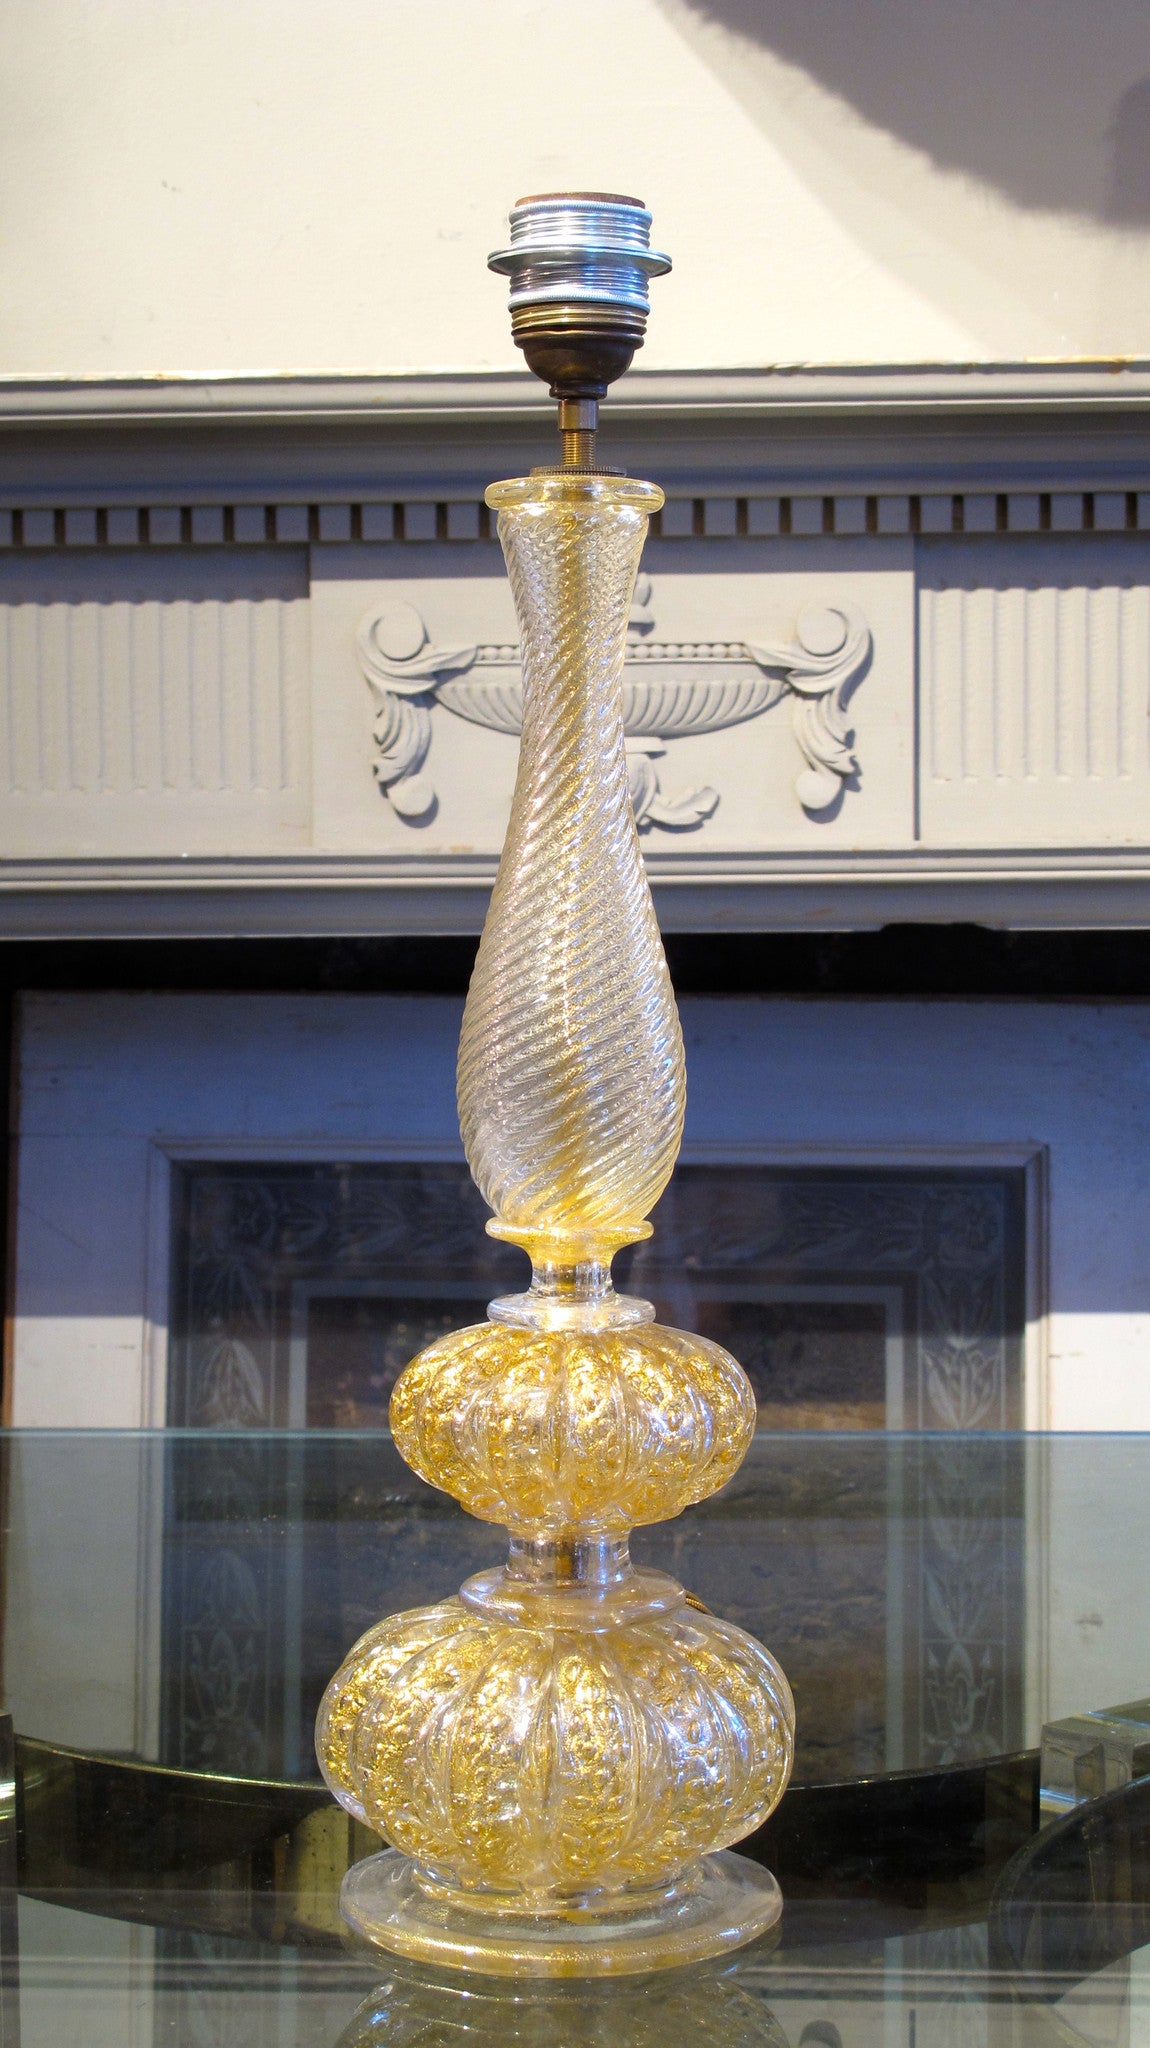 X Barovier Murano glass table lamp with gold leaf inclusions.